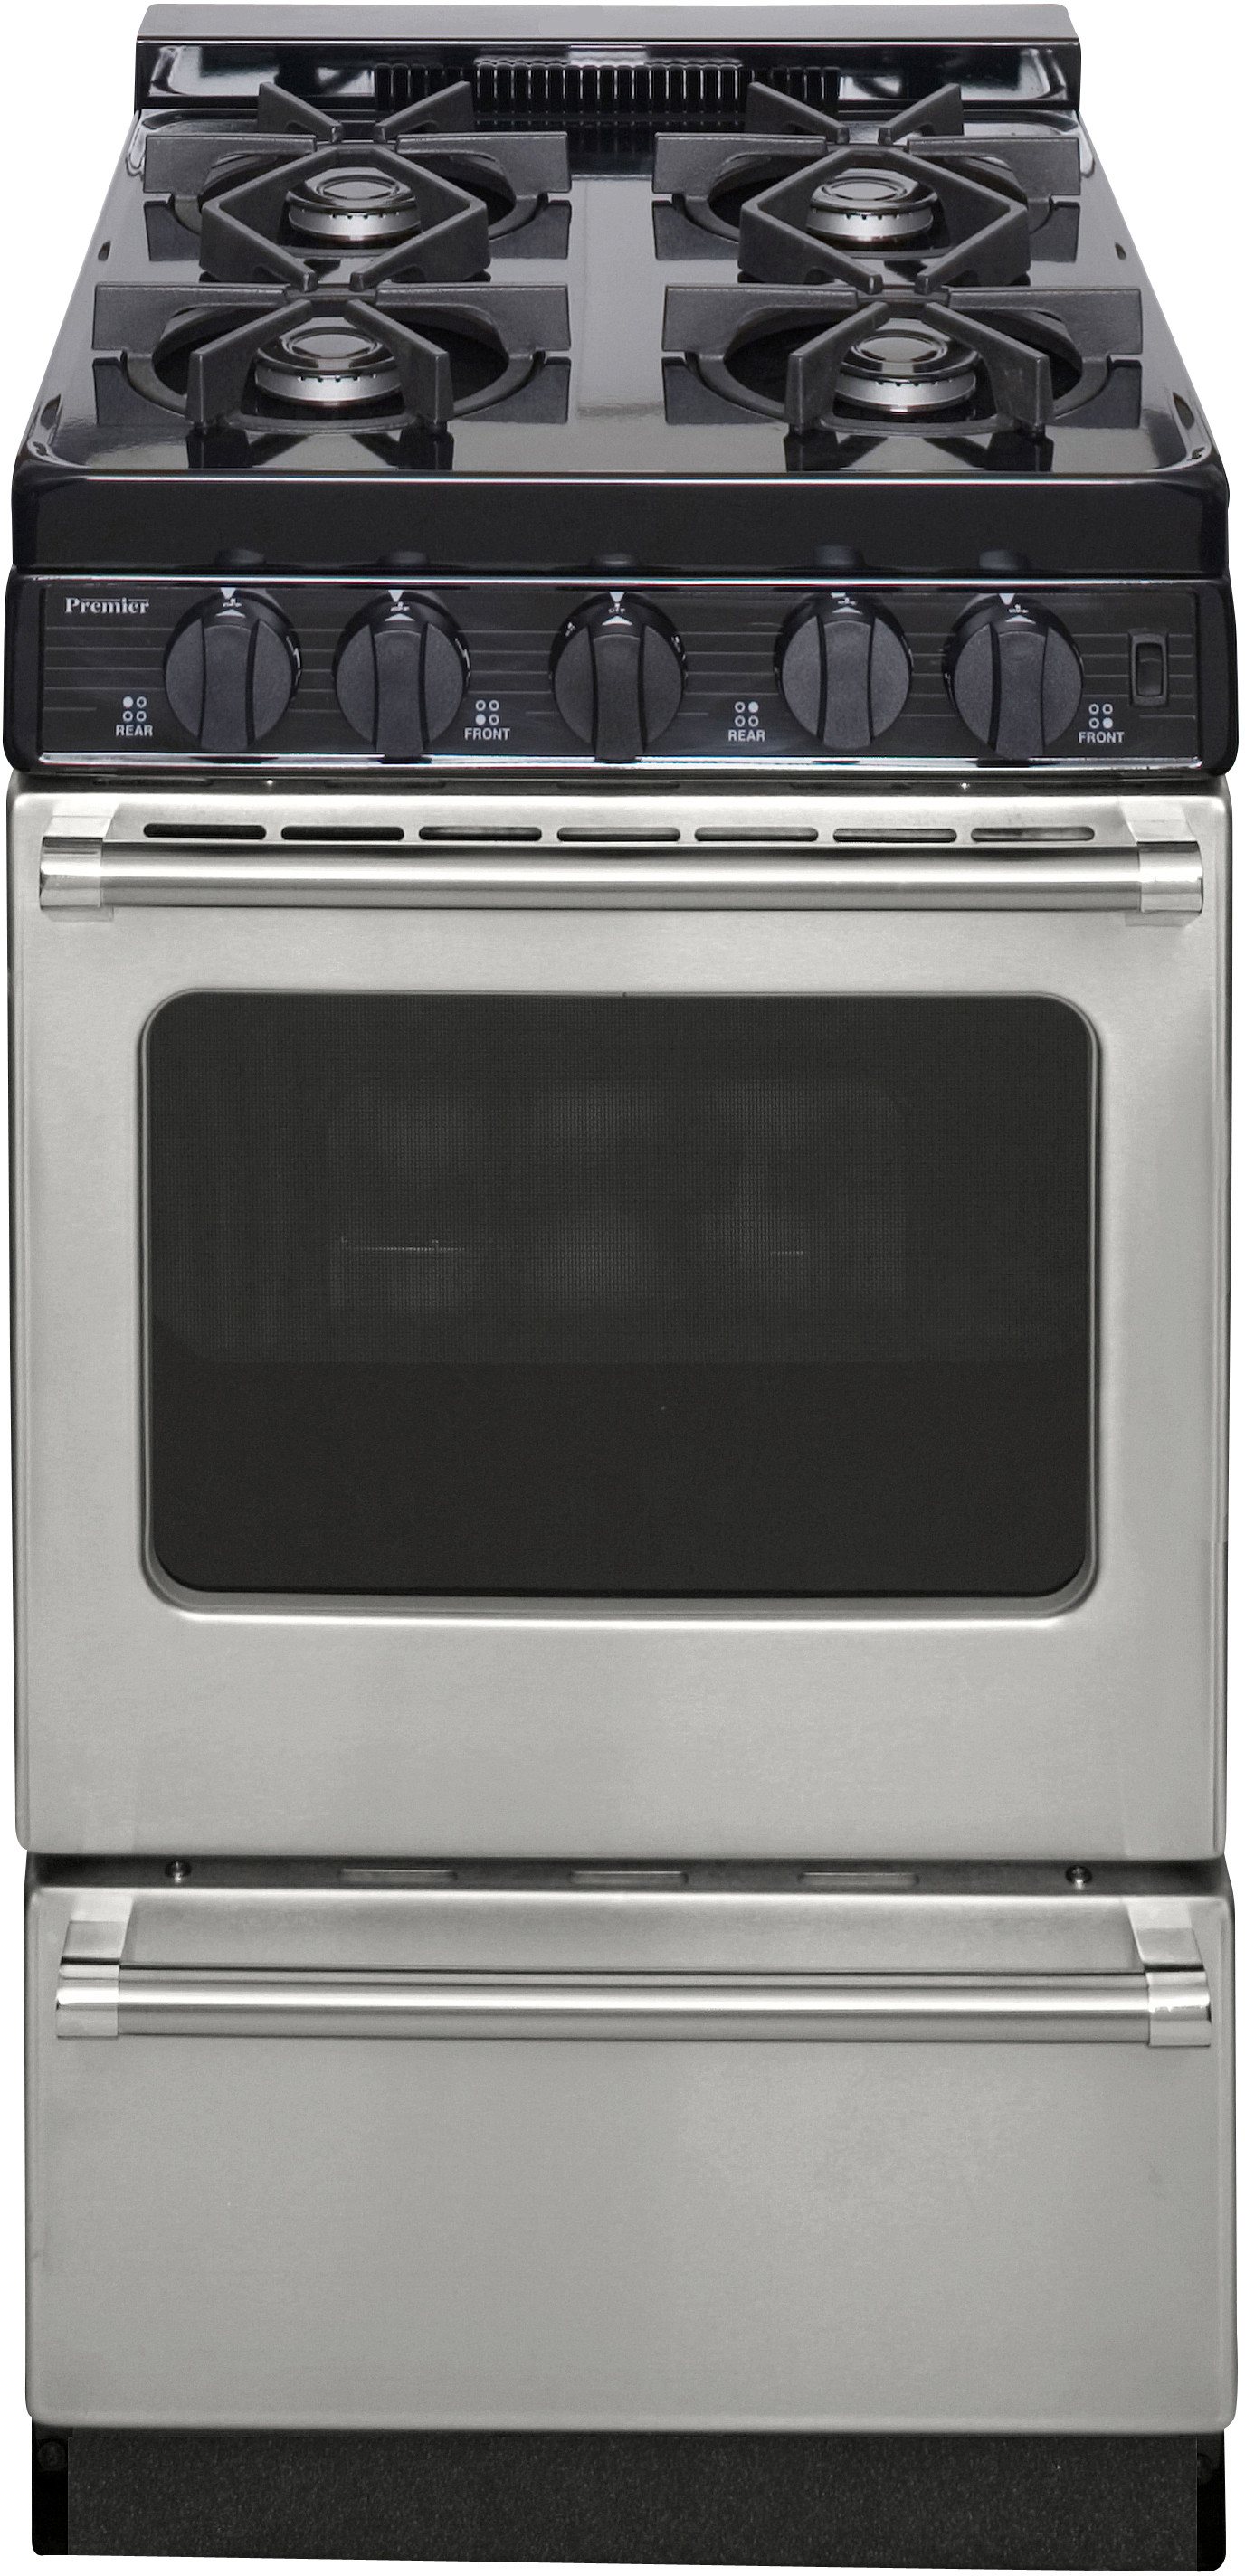 Premier P20s3102p 20 Inch Freestanding Gas Range With 4